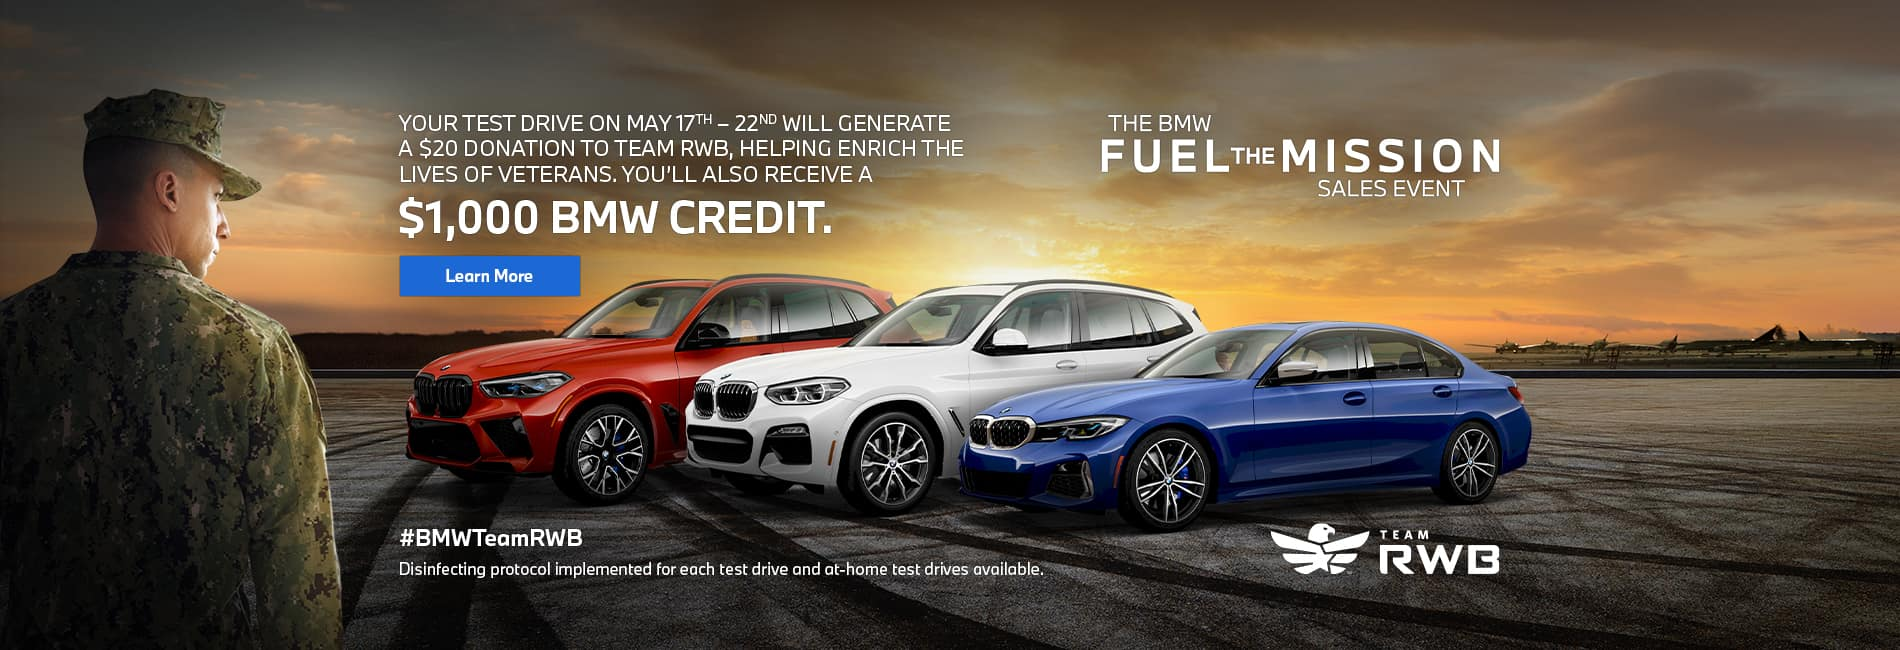 Fuel the Mission Sales Event